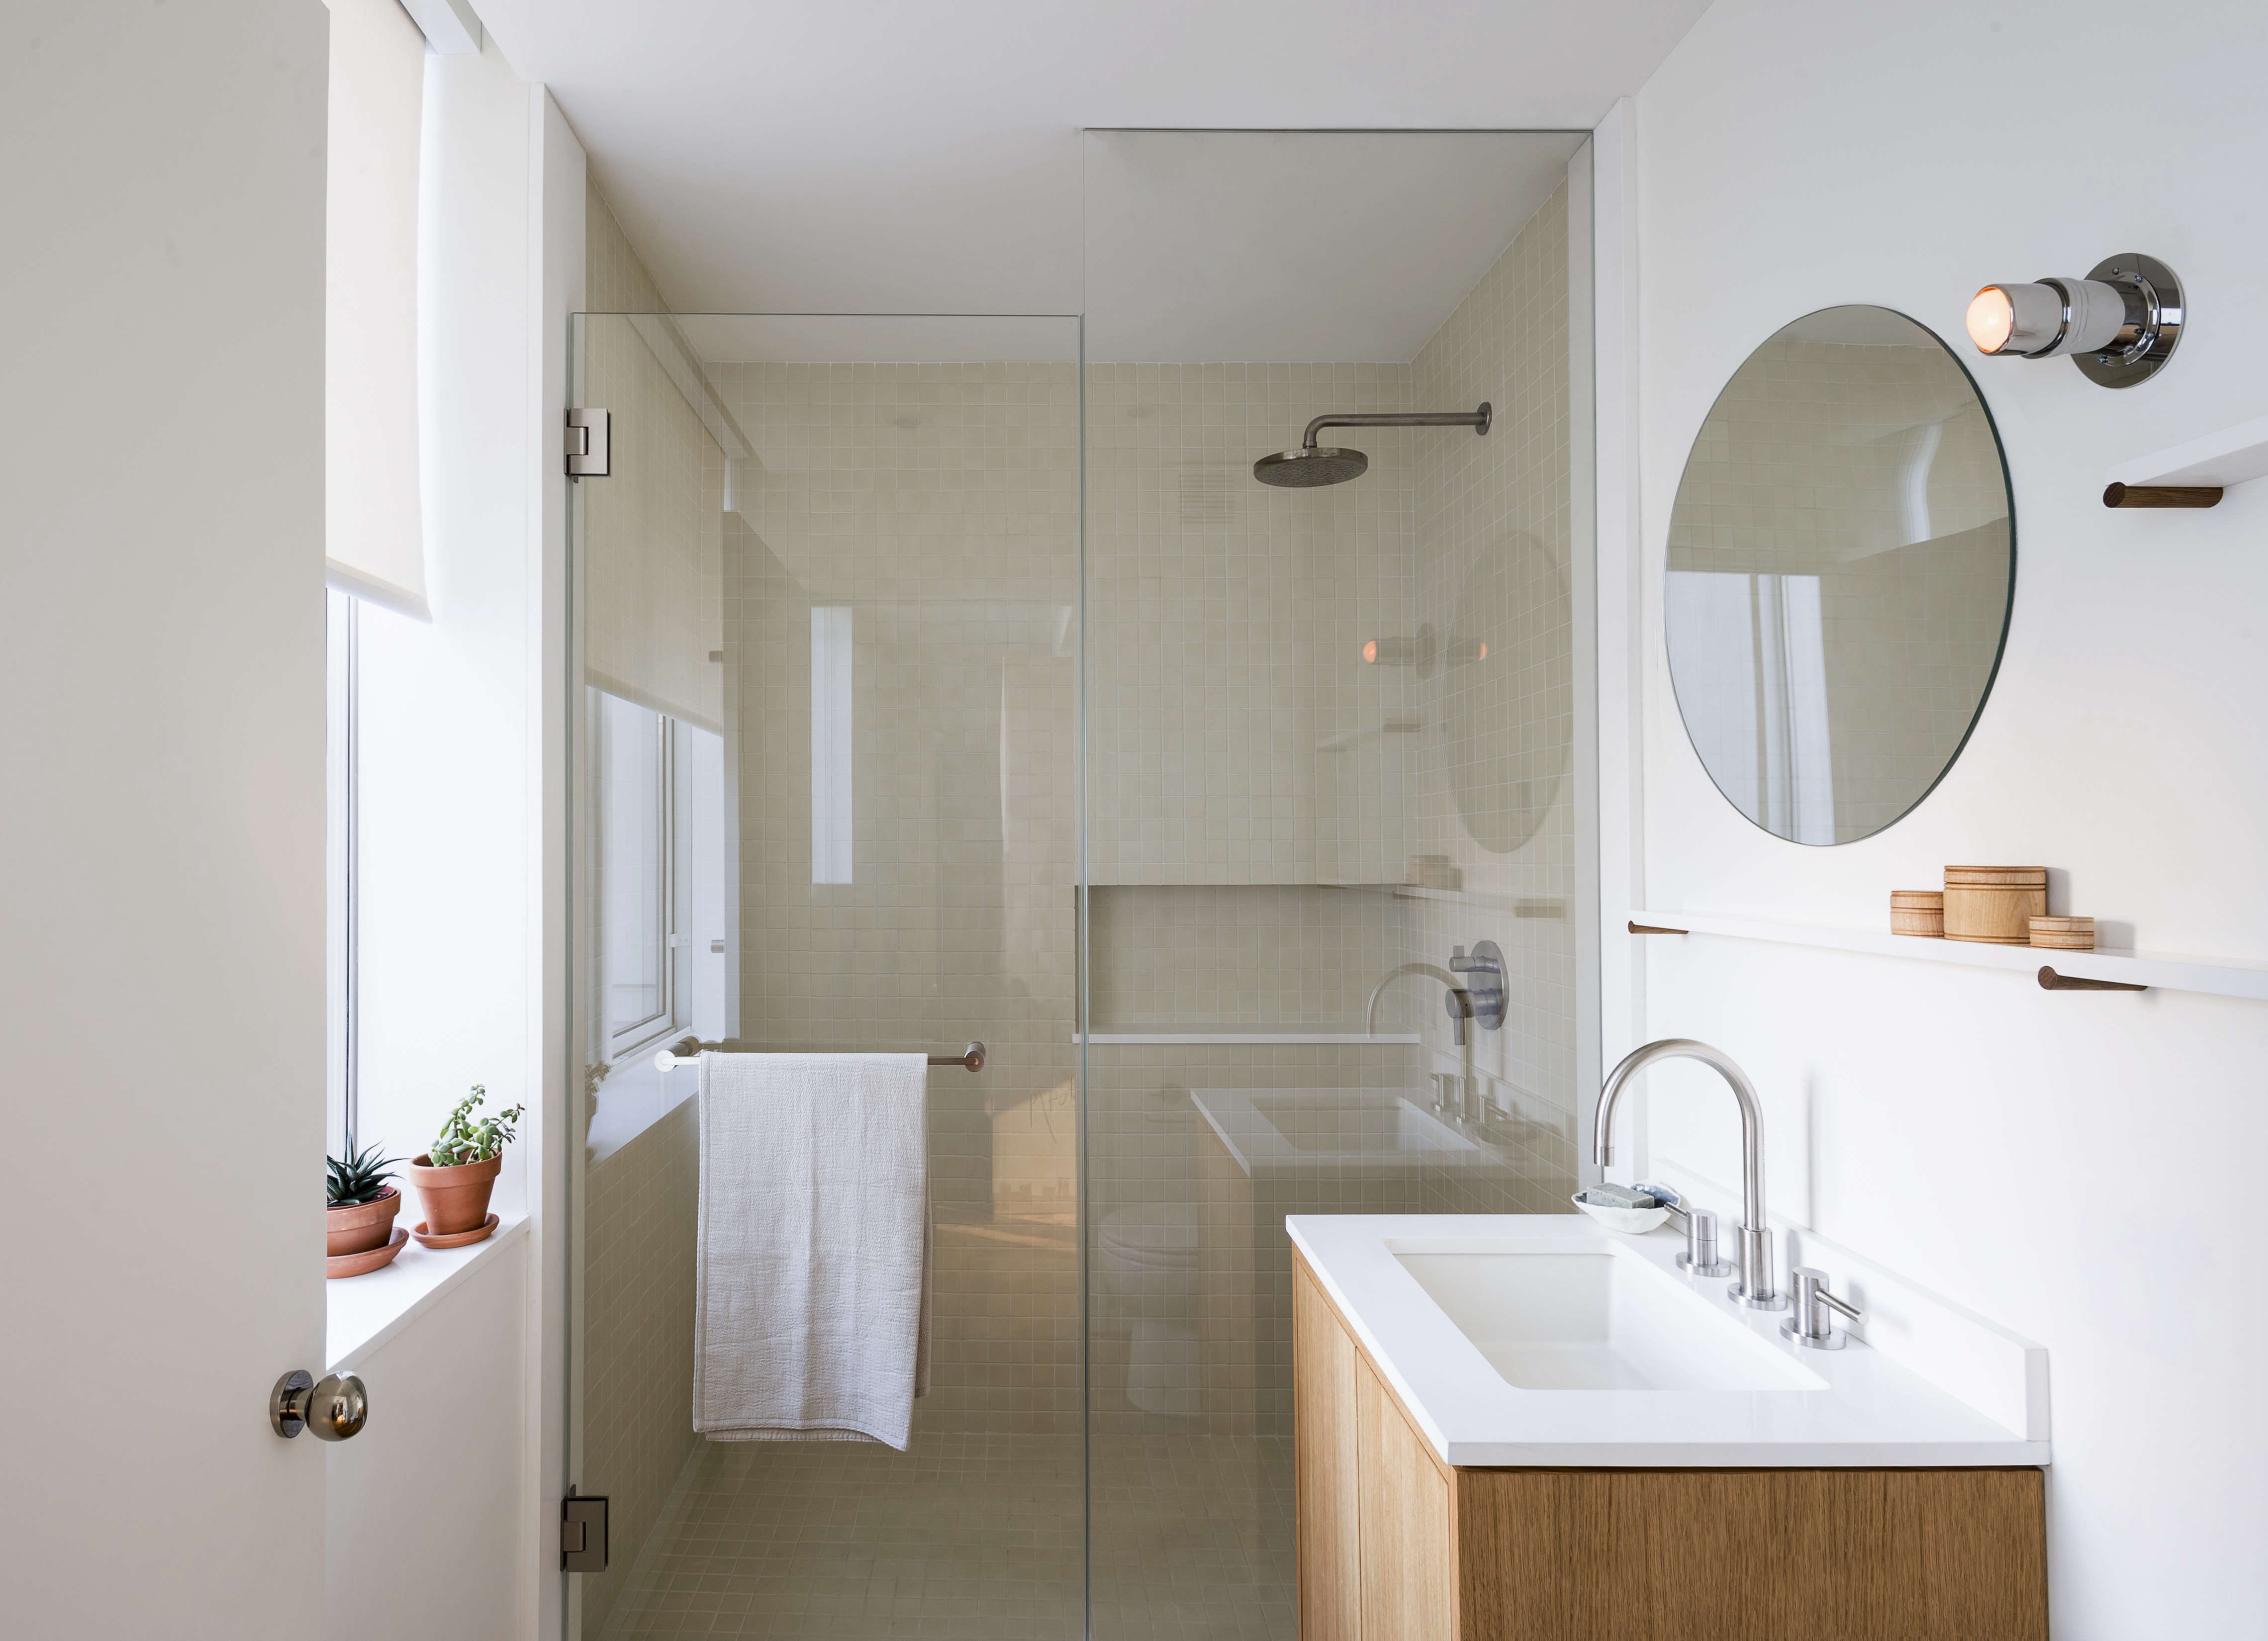 NY apartment small bathroom remodel glass shower and Eileen Gray Pailla wall lamp